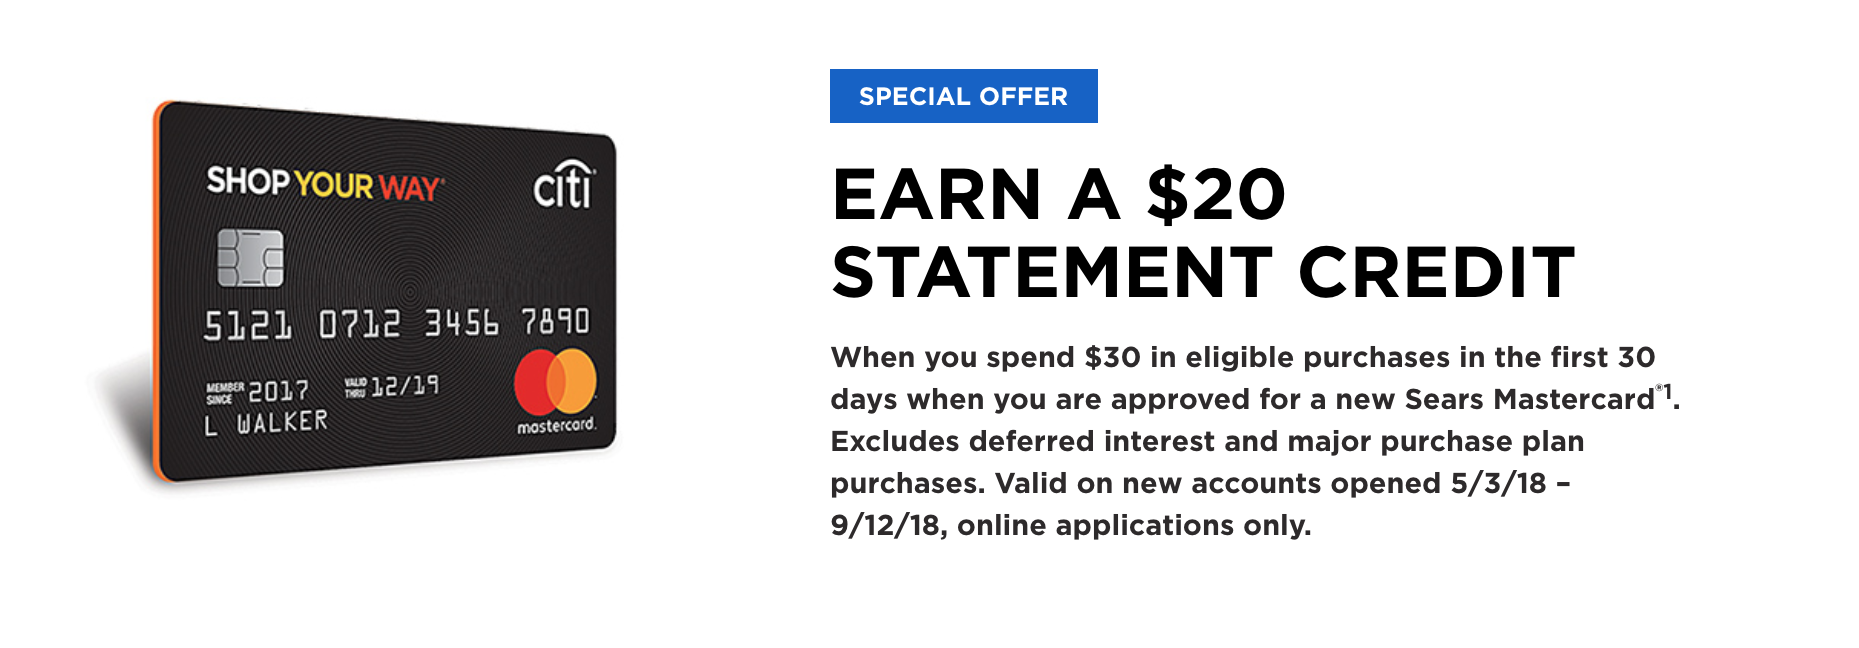 Sears Credit Card Login Citibank >> Sears Credit Cards Shop Your Way Rewards Are They Worth It